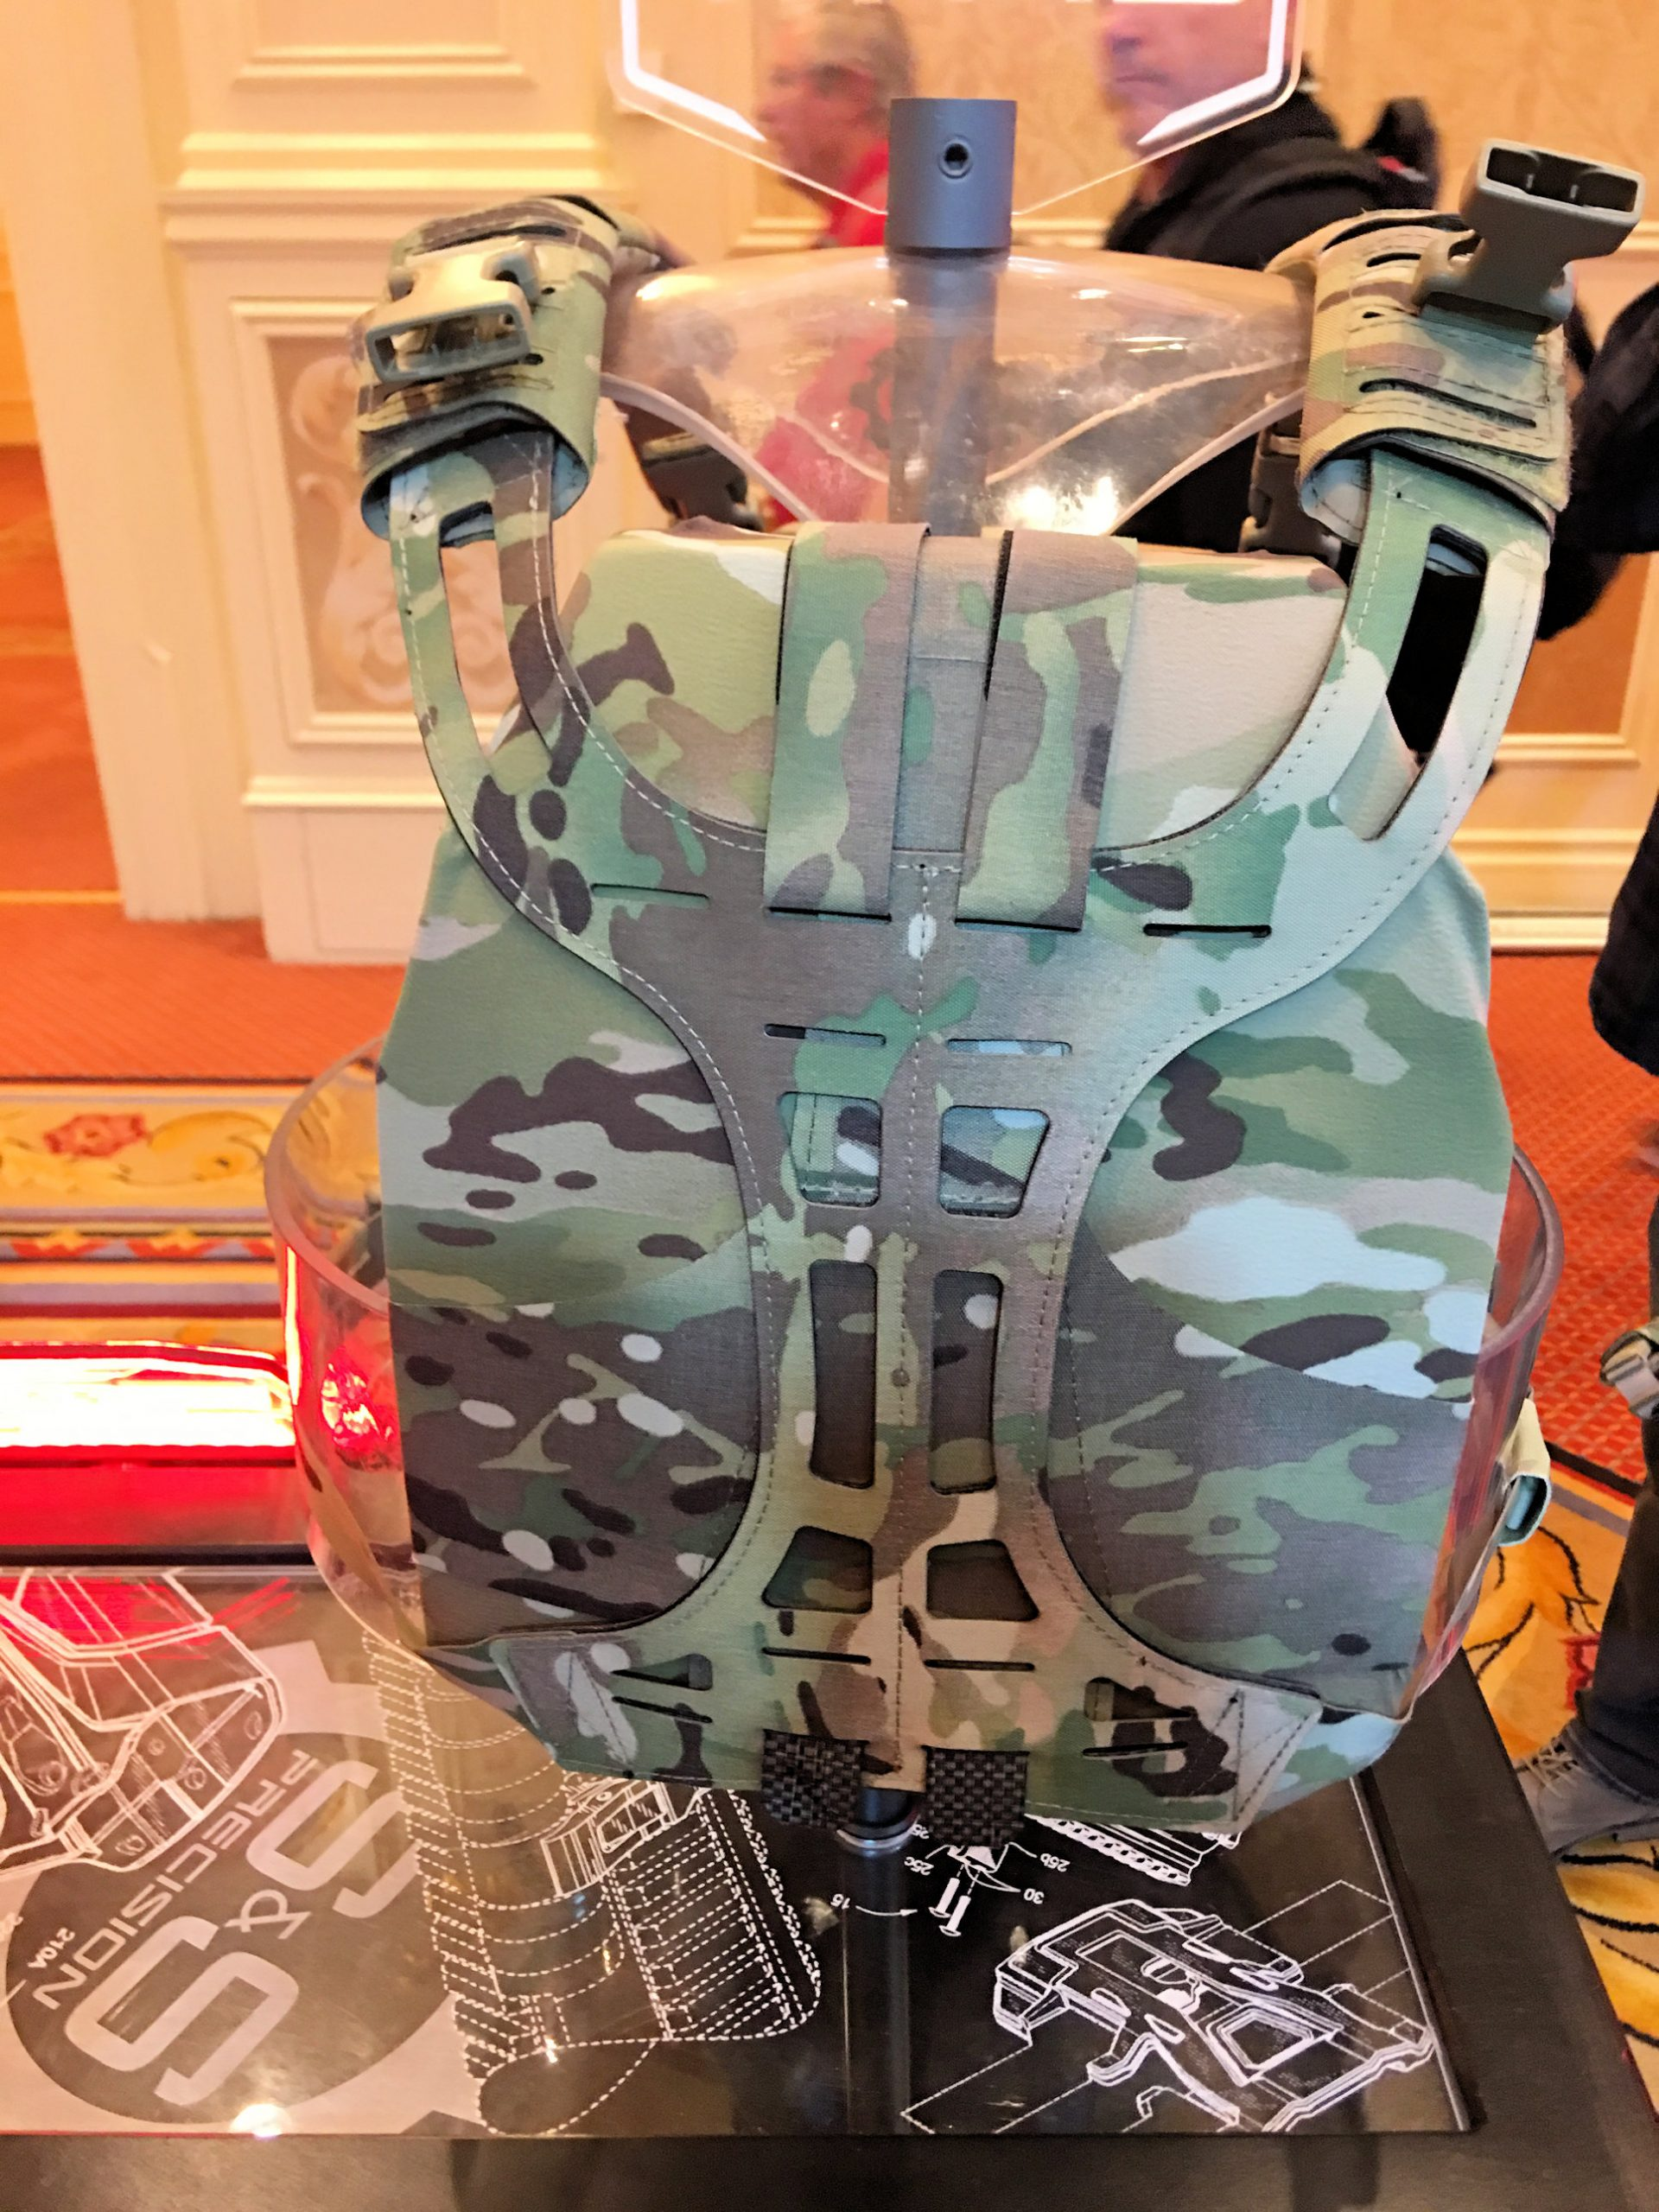 S&S Precision Chest Rig-Modular (CR-M) Tactical Armor Plate Carrier/Rhodesian Chest Rig with Watershed Waterproof Dry Bag for Spare AR Mags or ...